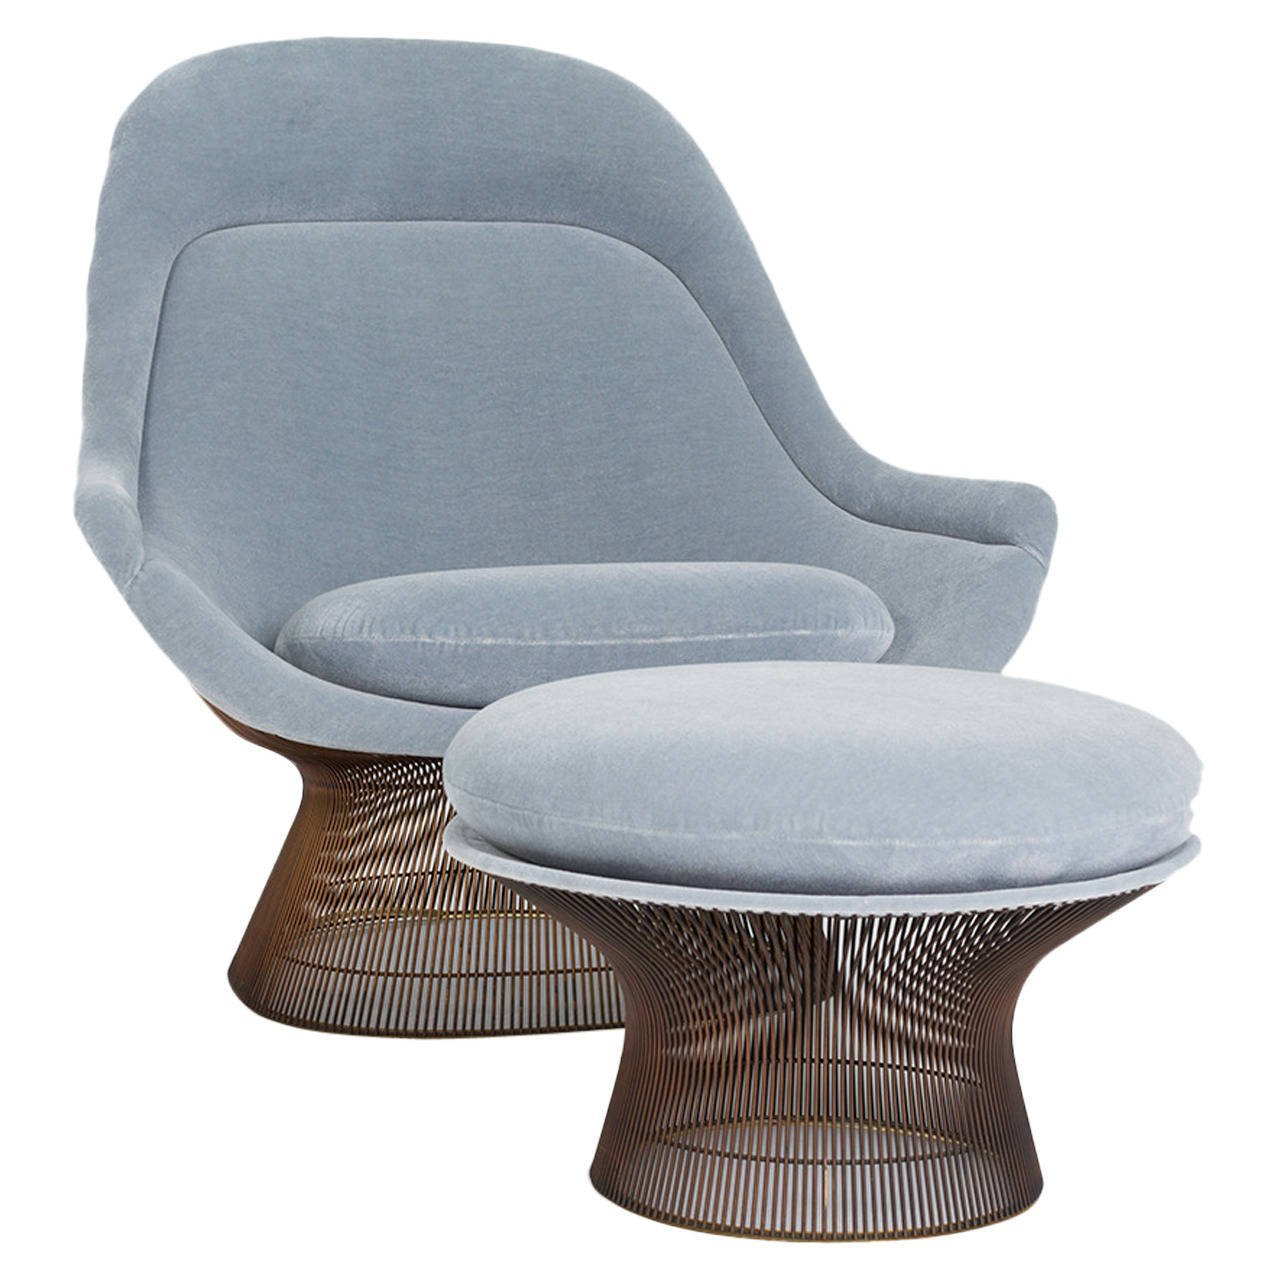 [SOLD] Warren Platner Lounge Chair and Ottoman for Knoll - The Exchange Int